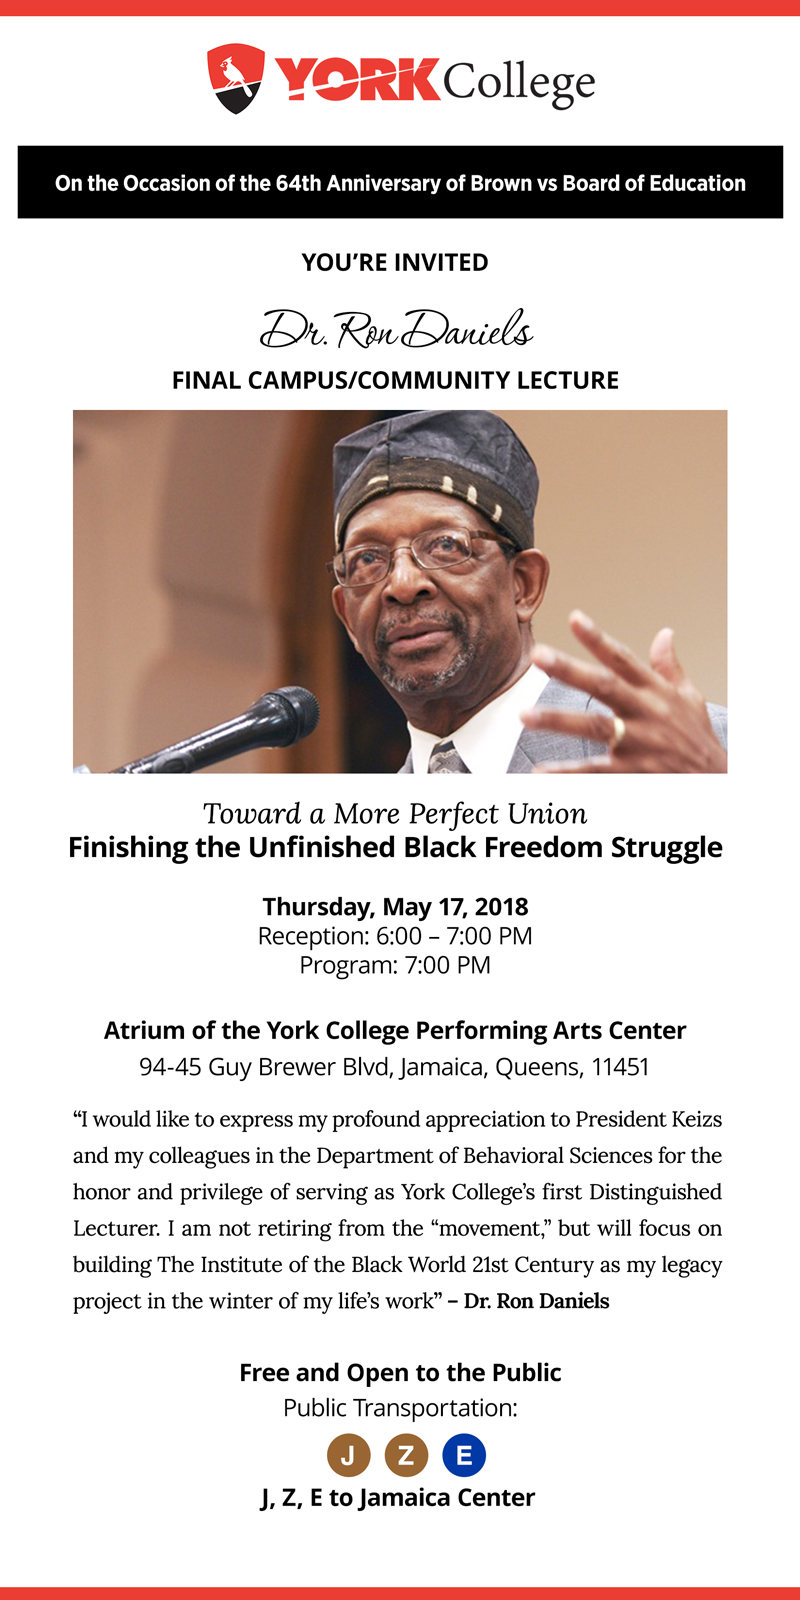 Dr. Ron Daniels Final Campus/Community Lecture Toward a More Perfect Union Finishing the Unfinished Black Freedom Struggle